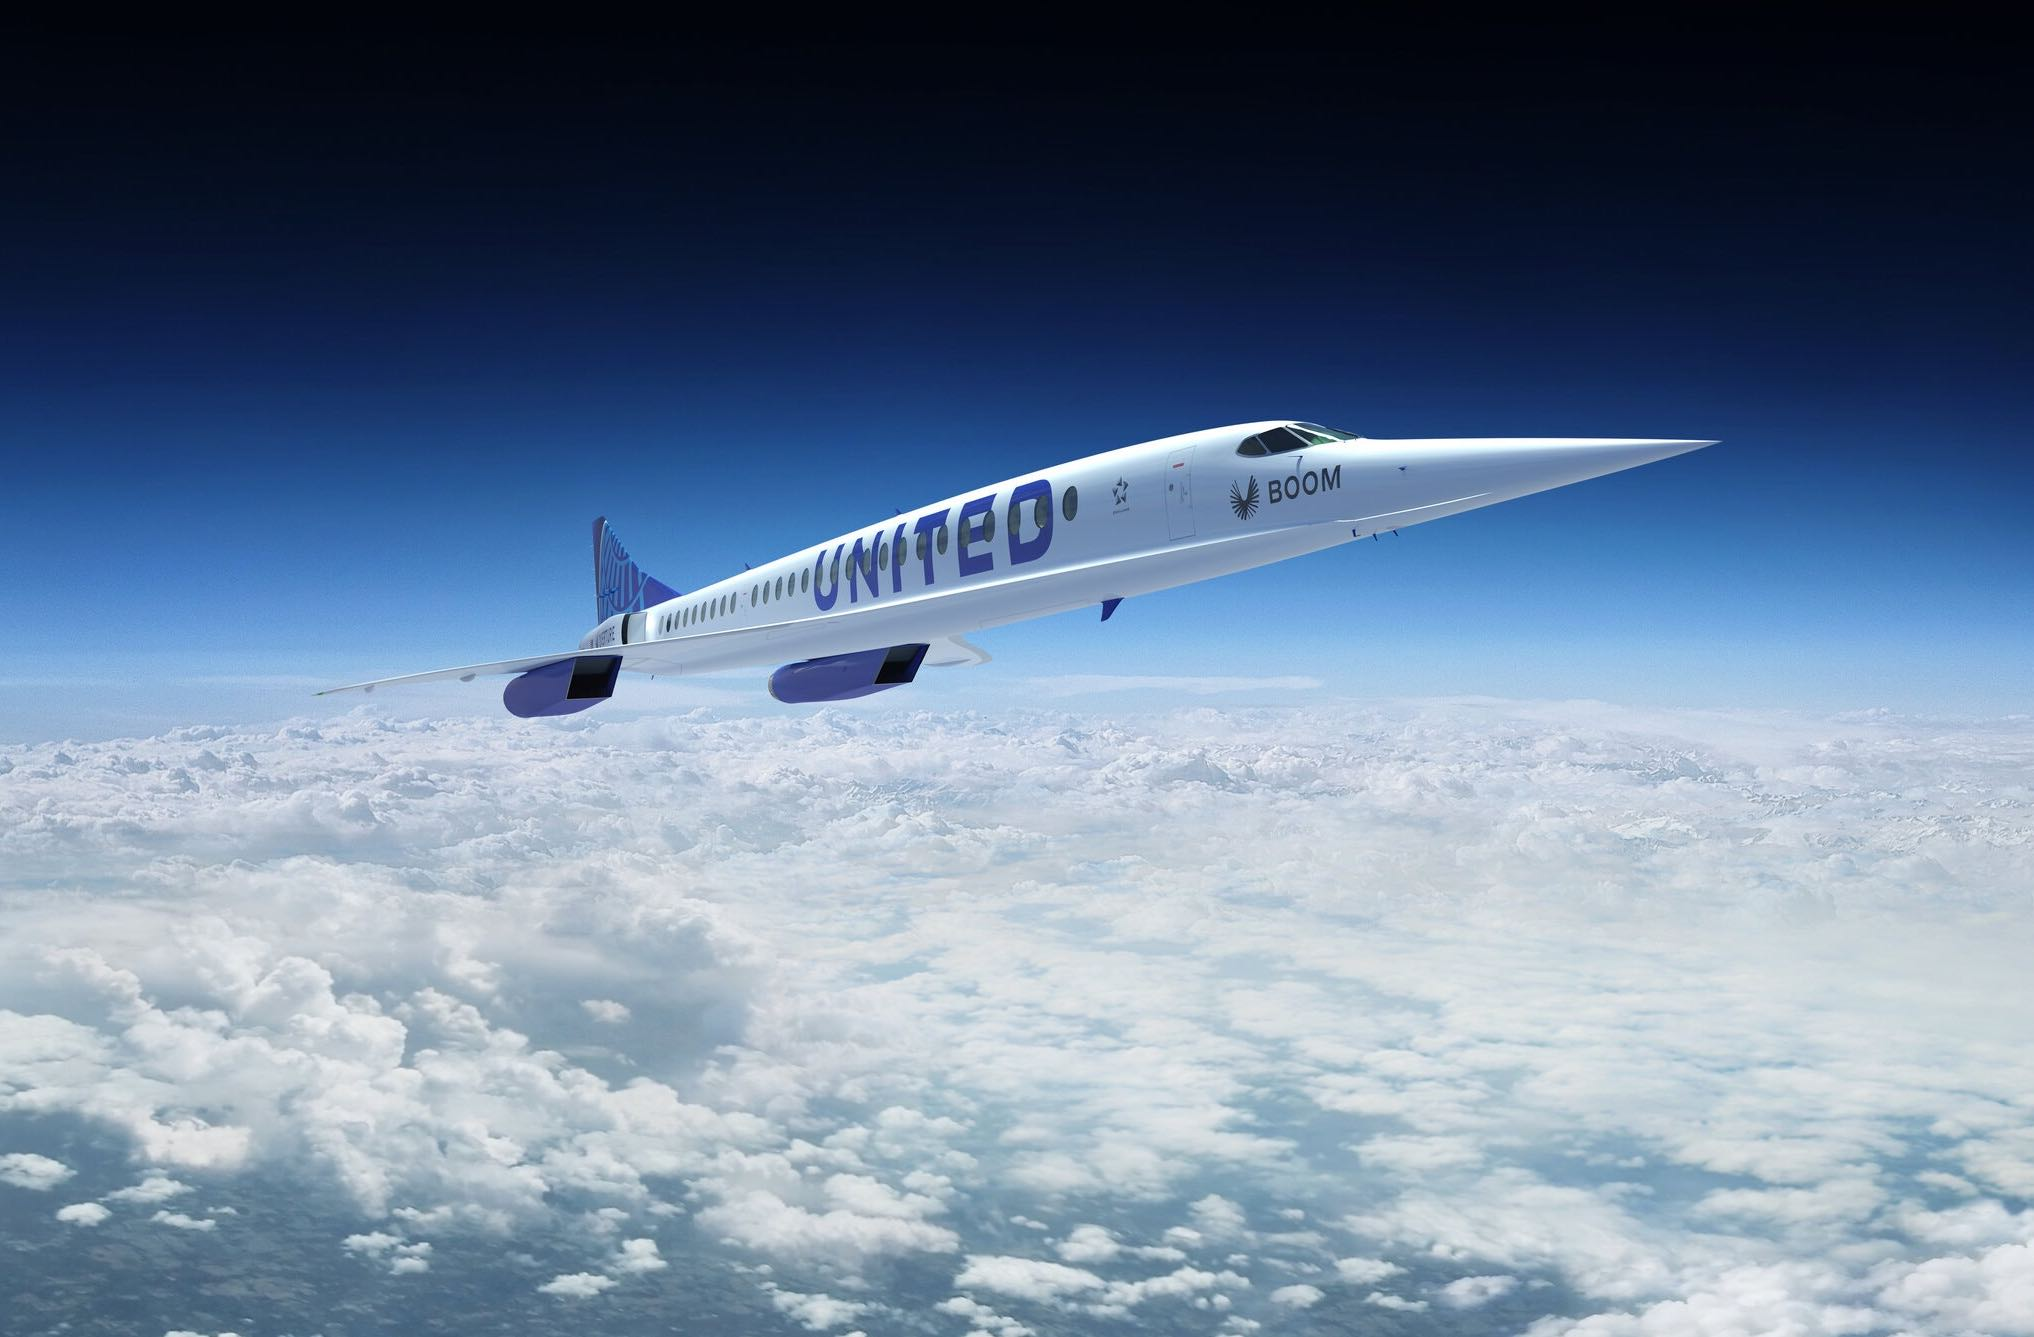 News: United Airlines Wants to Bring Back Supersonic Air Travel